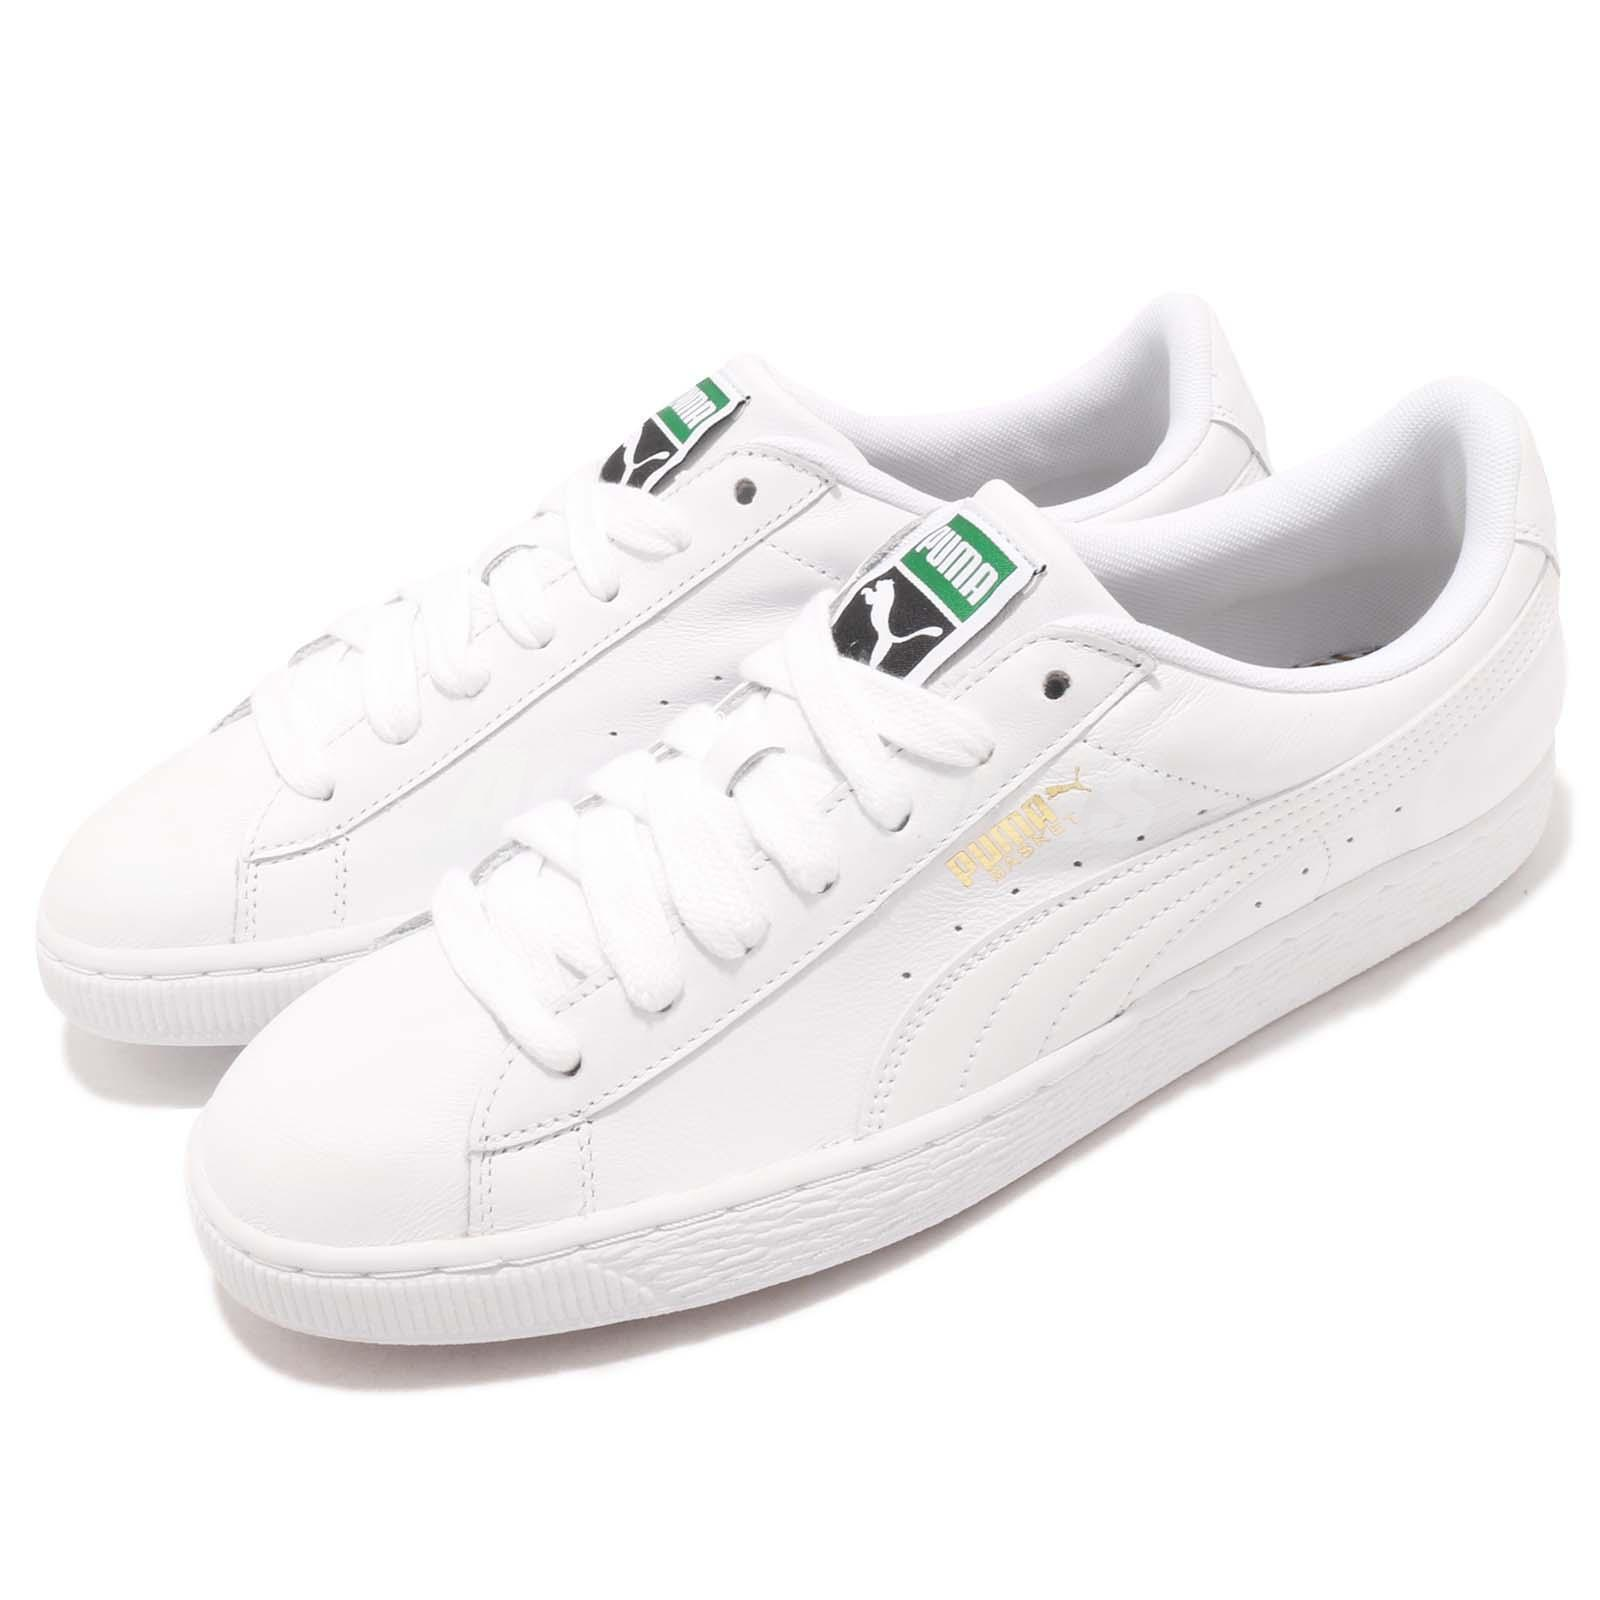 Puma Basket Classic LFS Blanc Leather Homme Casual Chaussures Trainers 354367-17